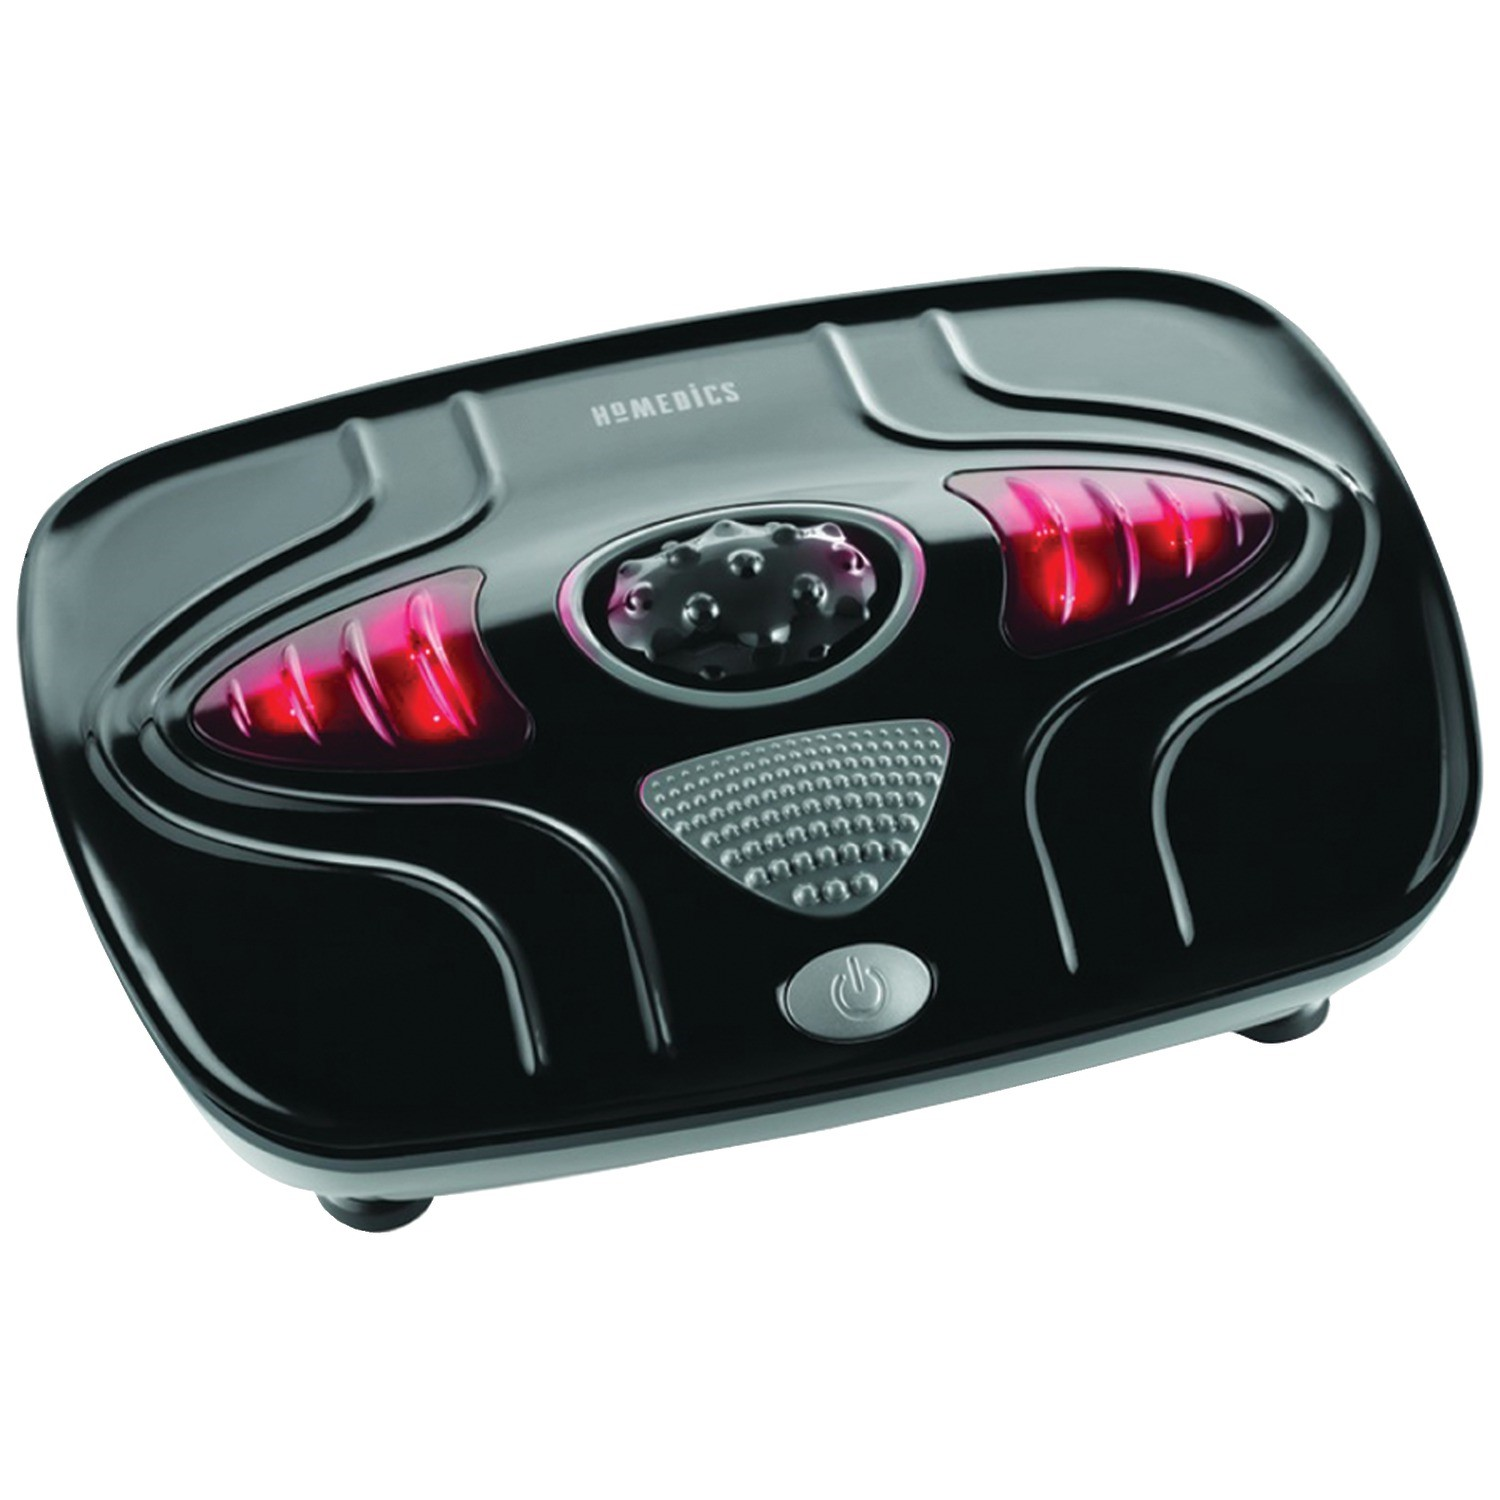 HoMedics Vibration Foot Massager with Heat Walmart